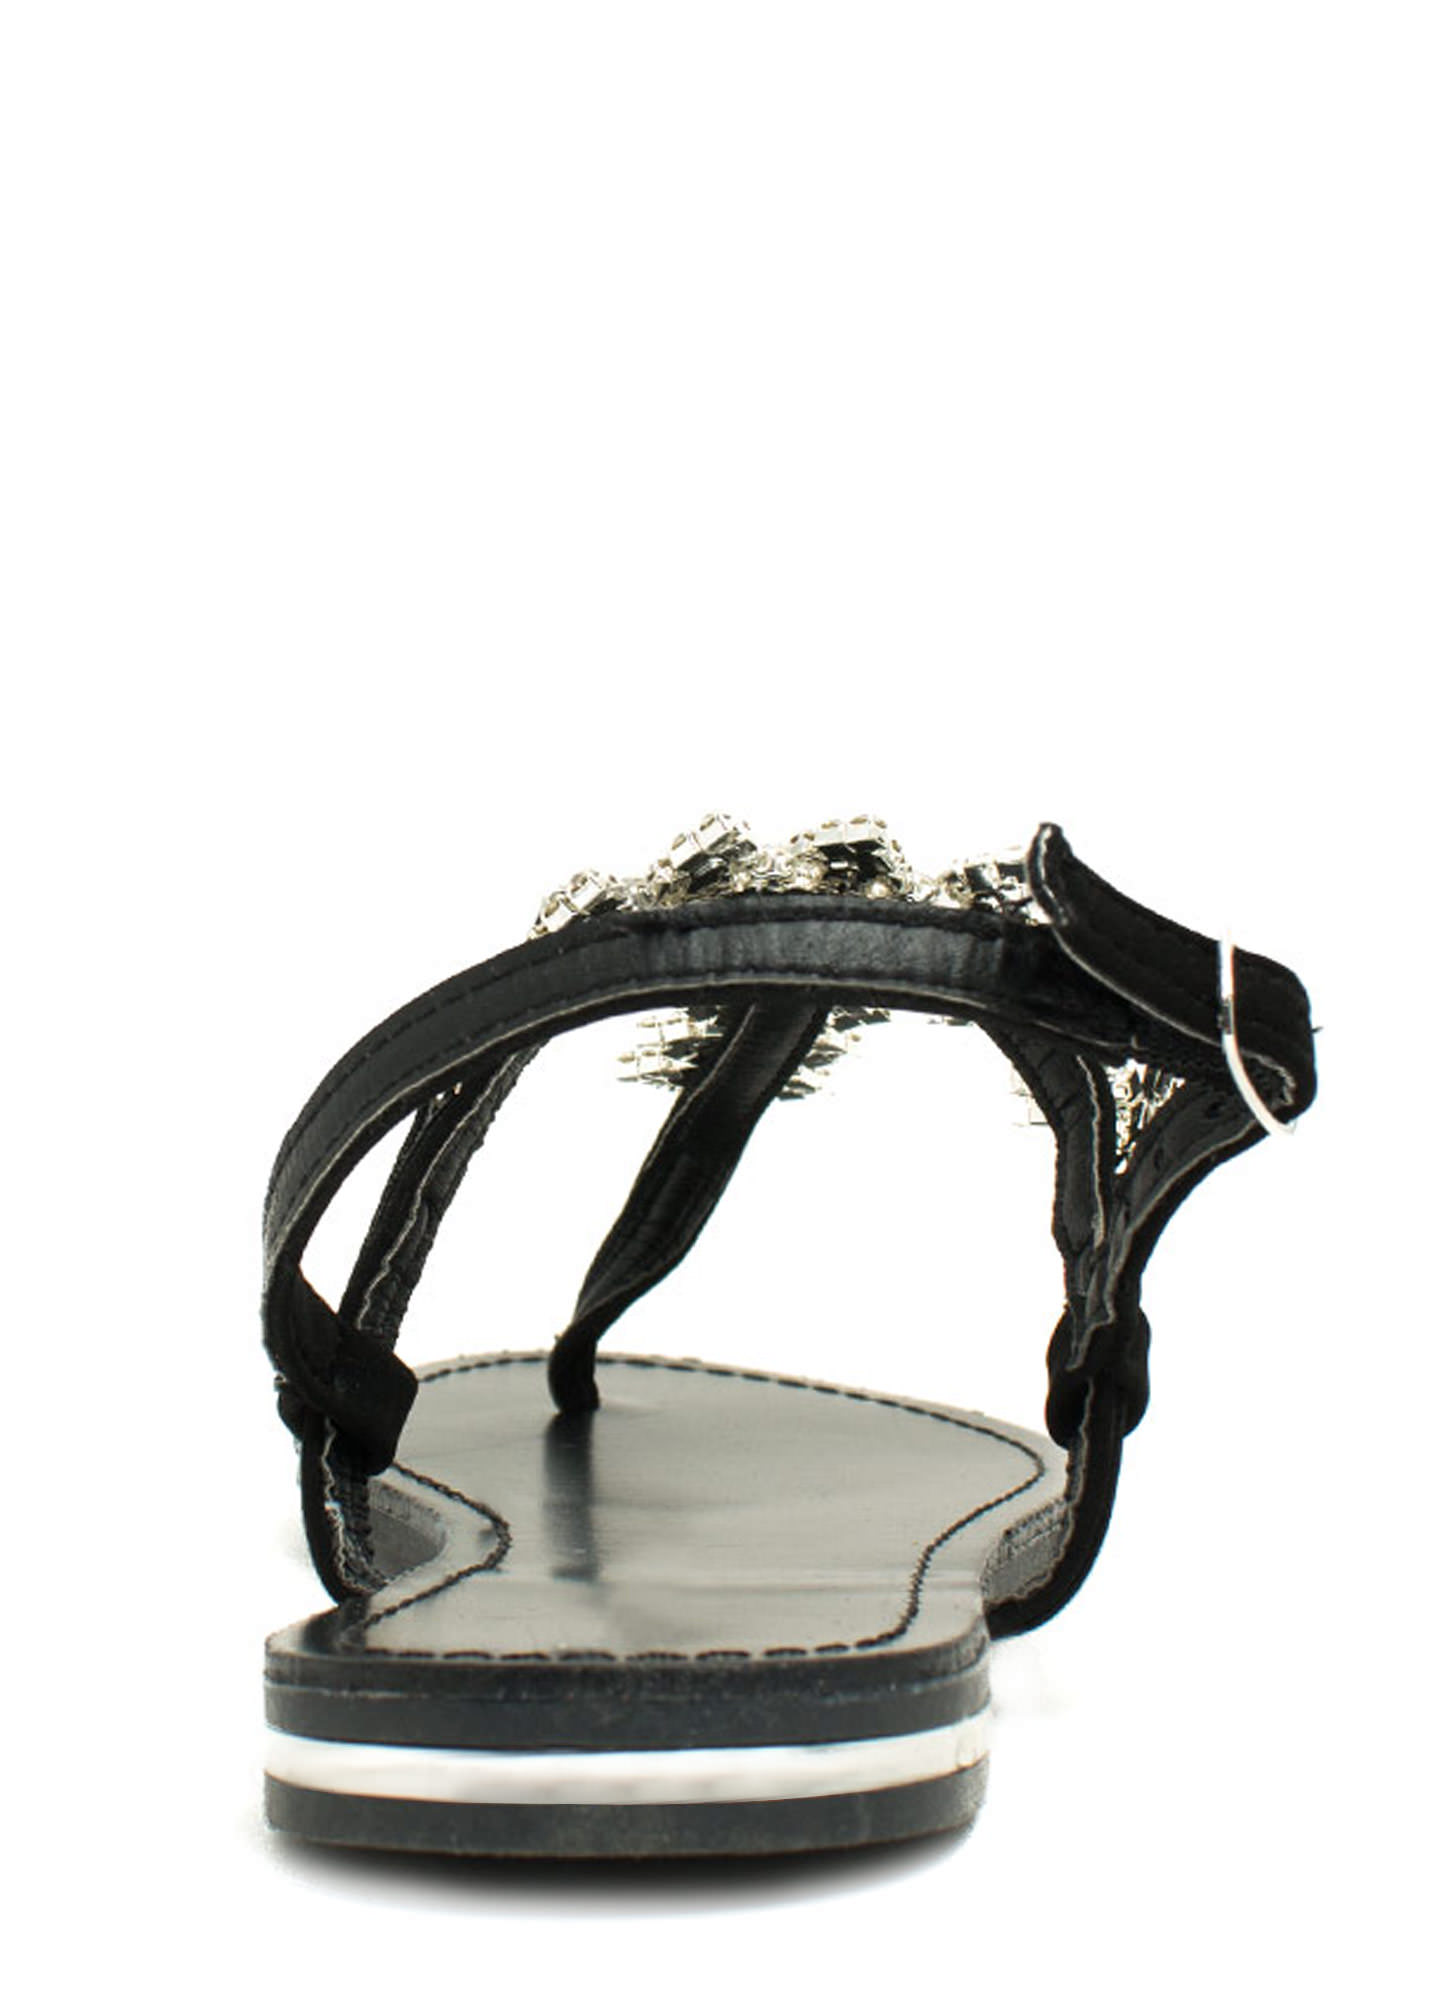 Lady Jewels T-Strap Sandals BLACK